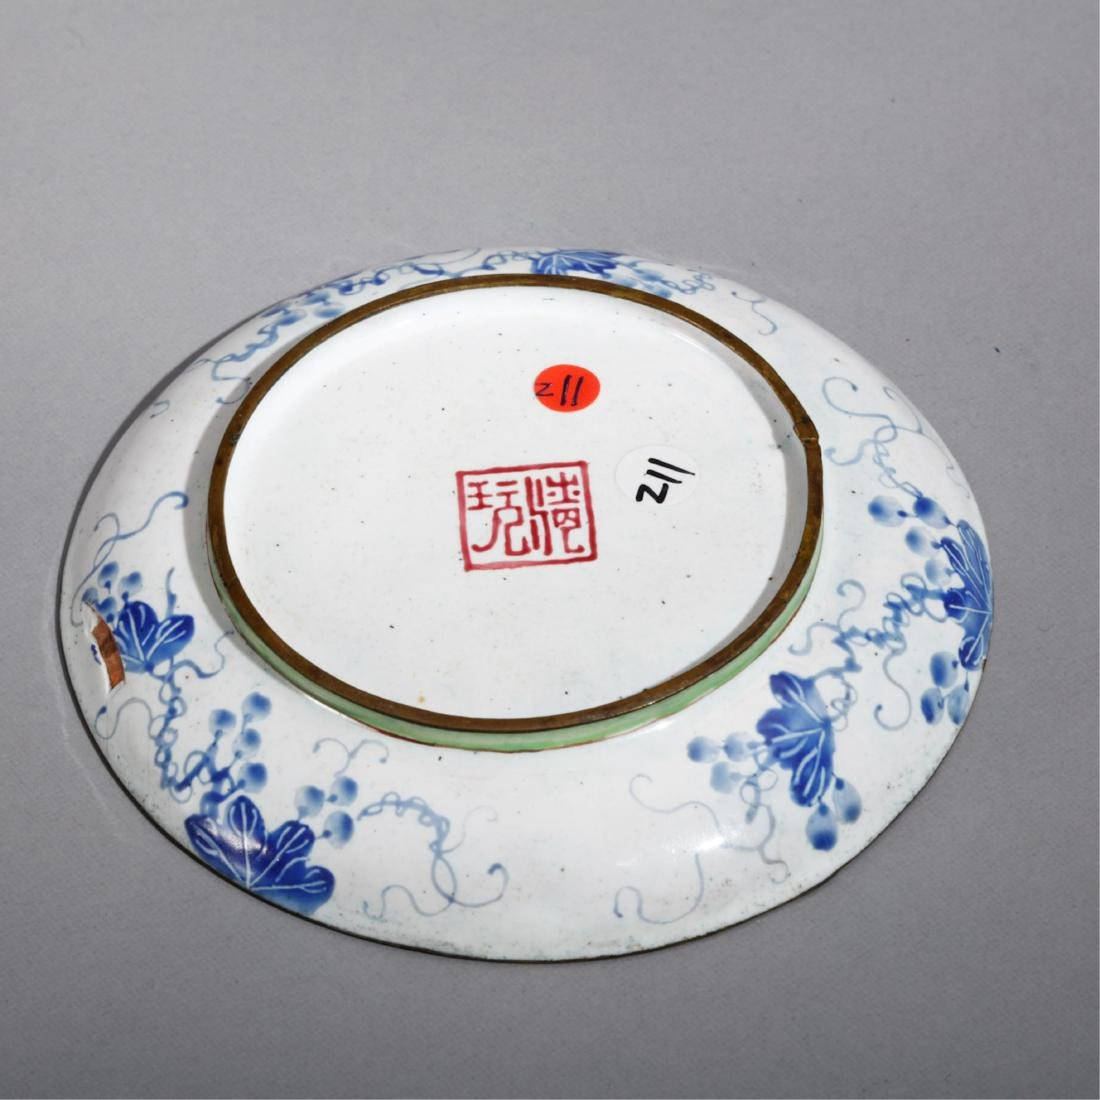 CHINESE BRONZE ENAMELS PLATE - 2